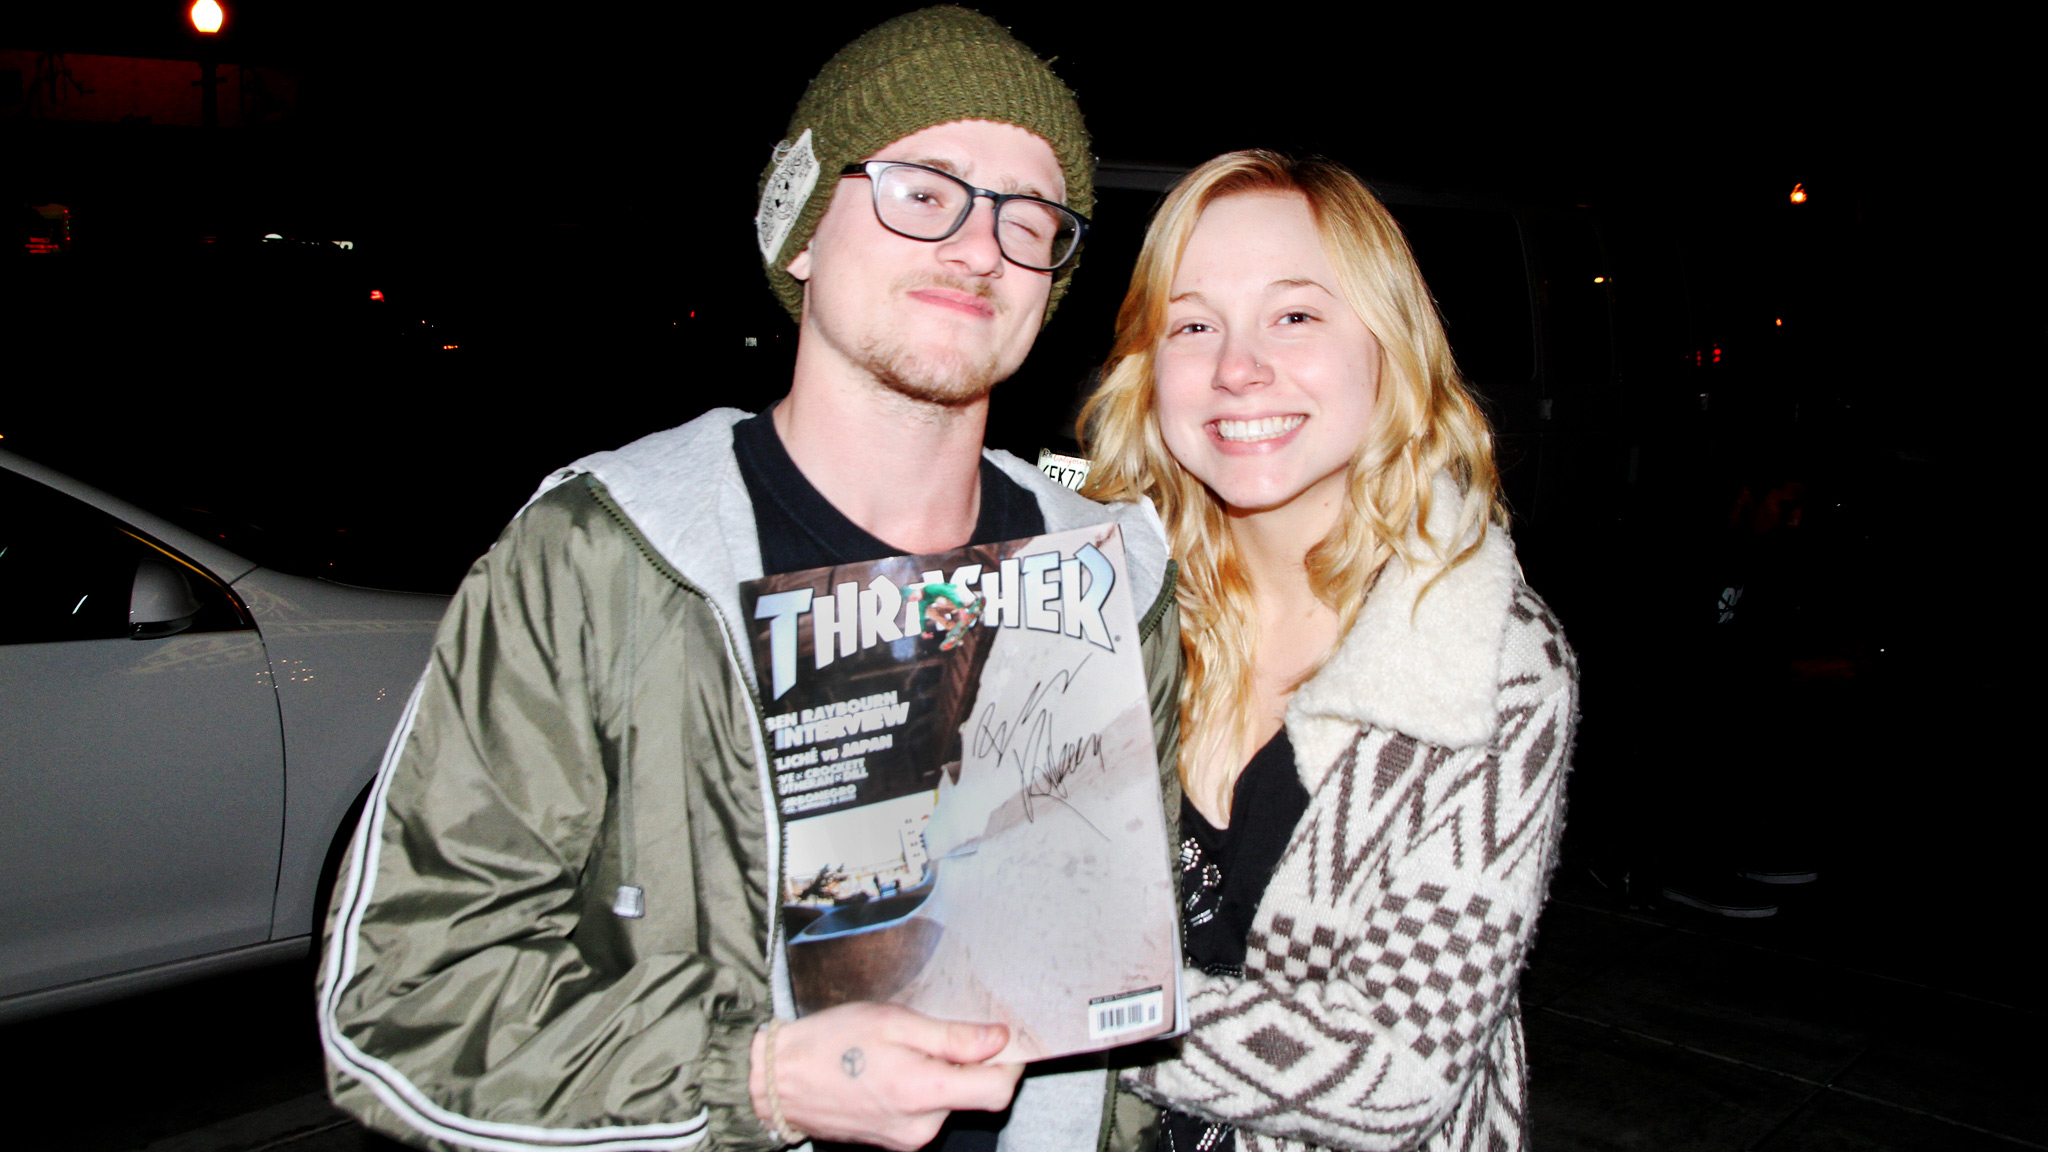 Ben Raybourn and friend show off his Thrasher cover during the New Ground premiere.